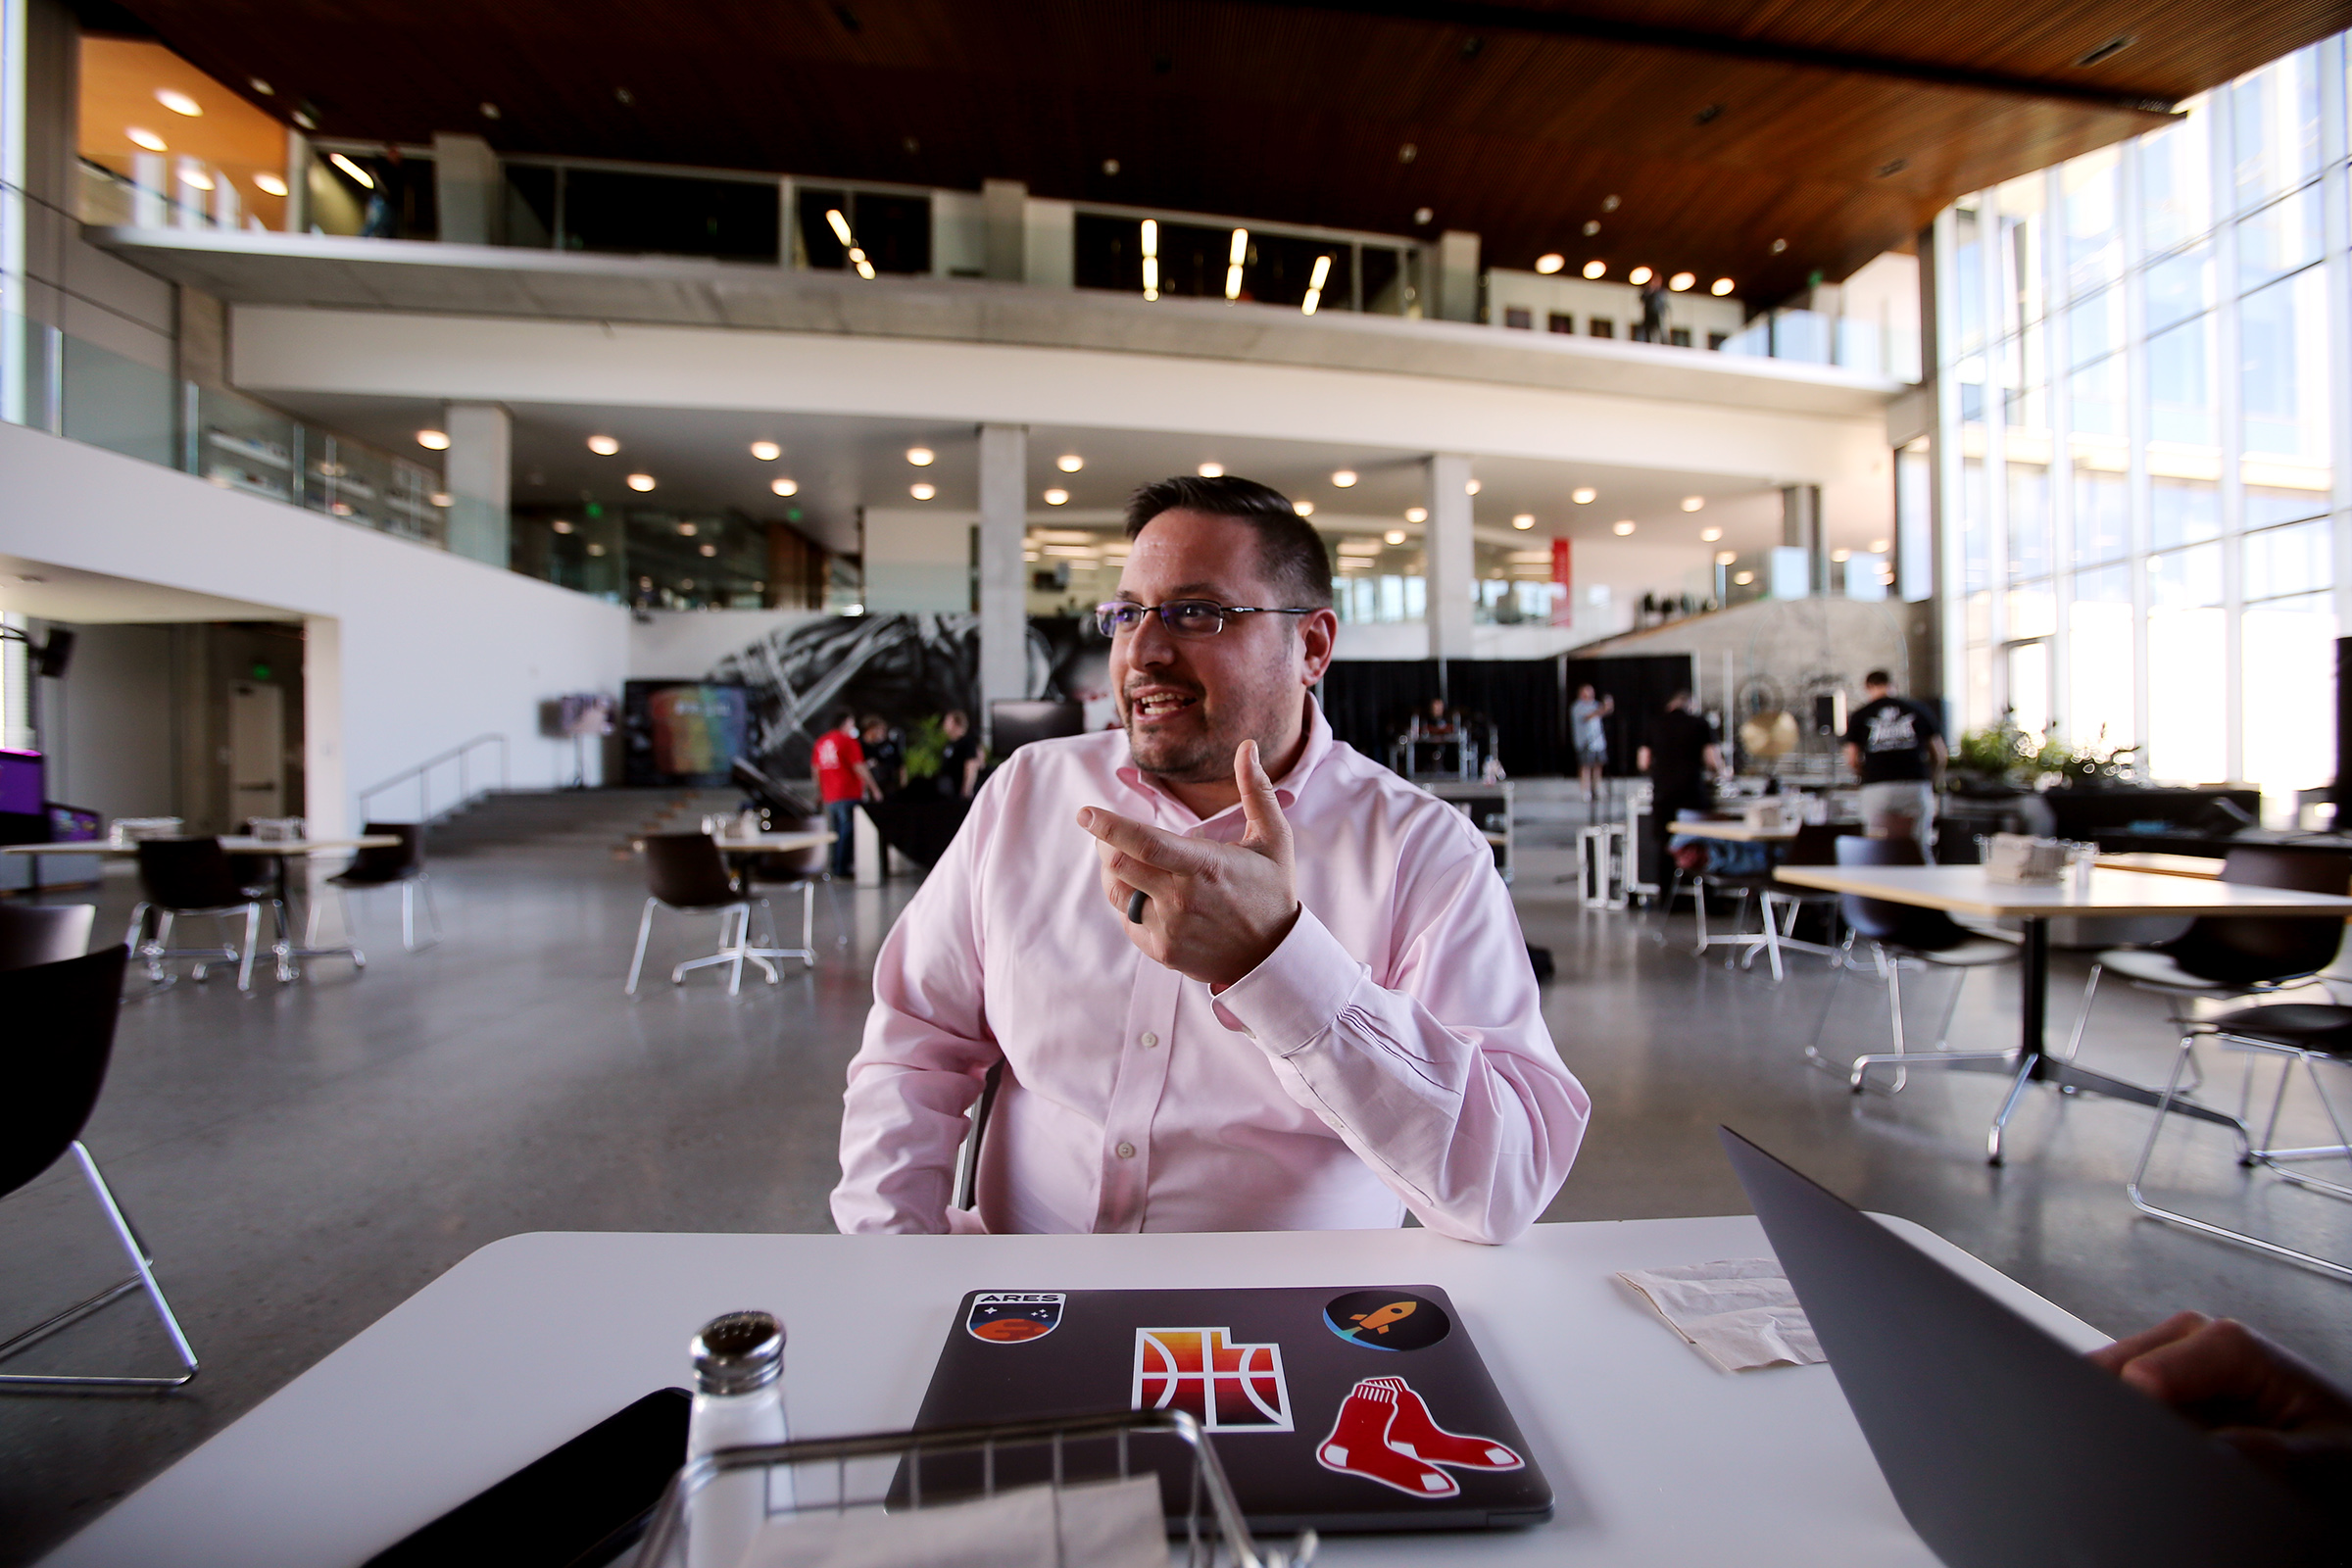 Ben Gaines, director of product management at Adobe, talks about the company and how it is growing in Utah during an interview in Lehi on Tuesday, Oct. 8, 2019.